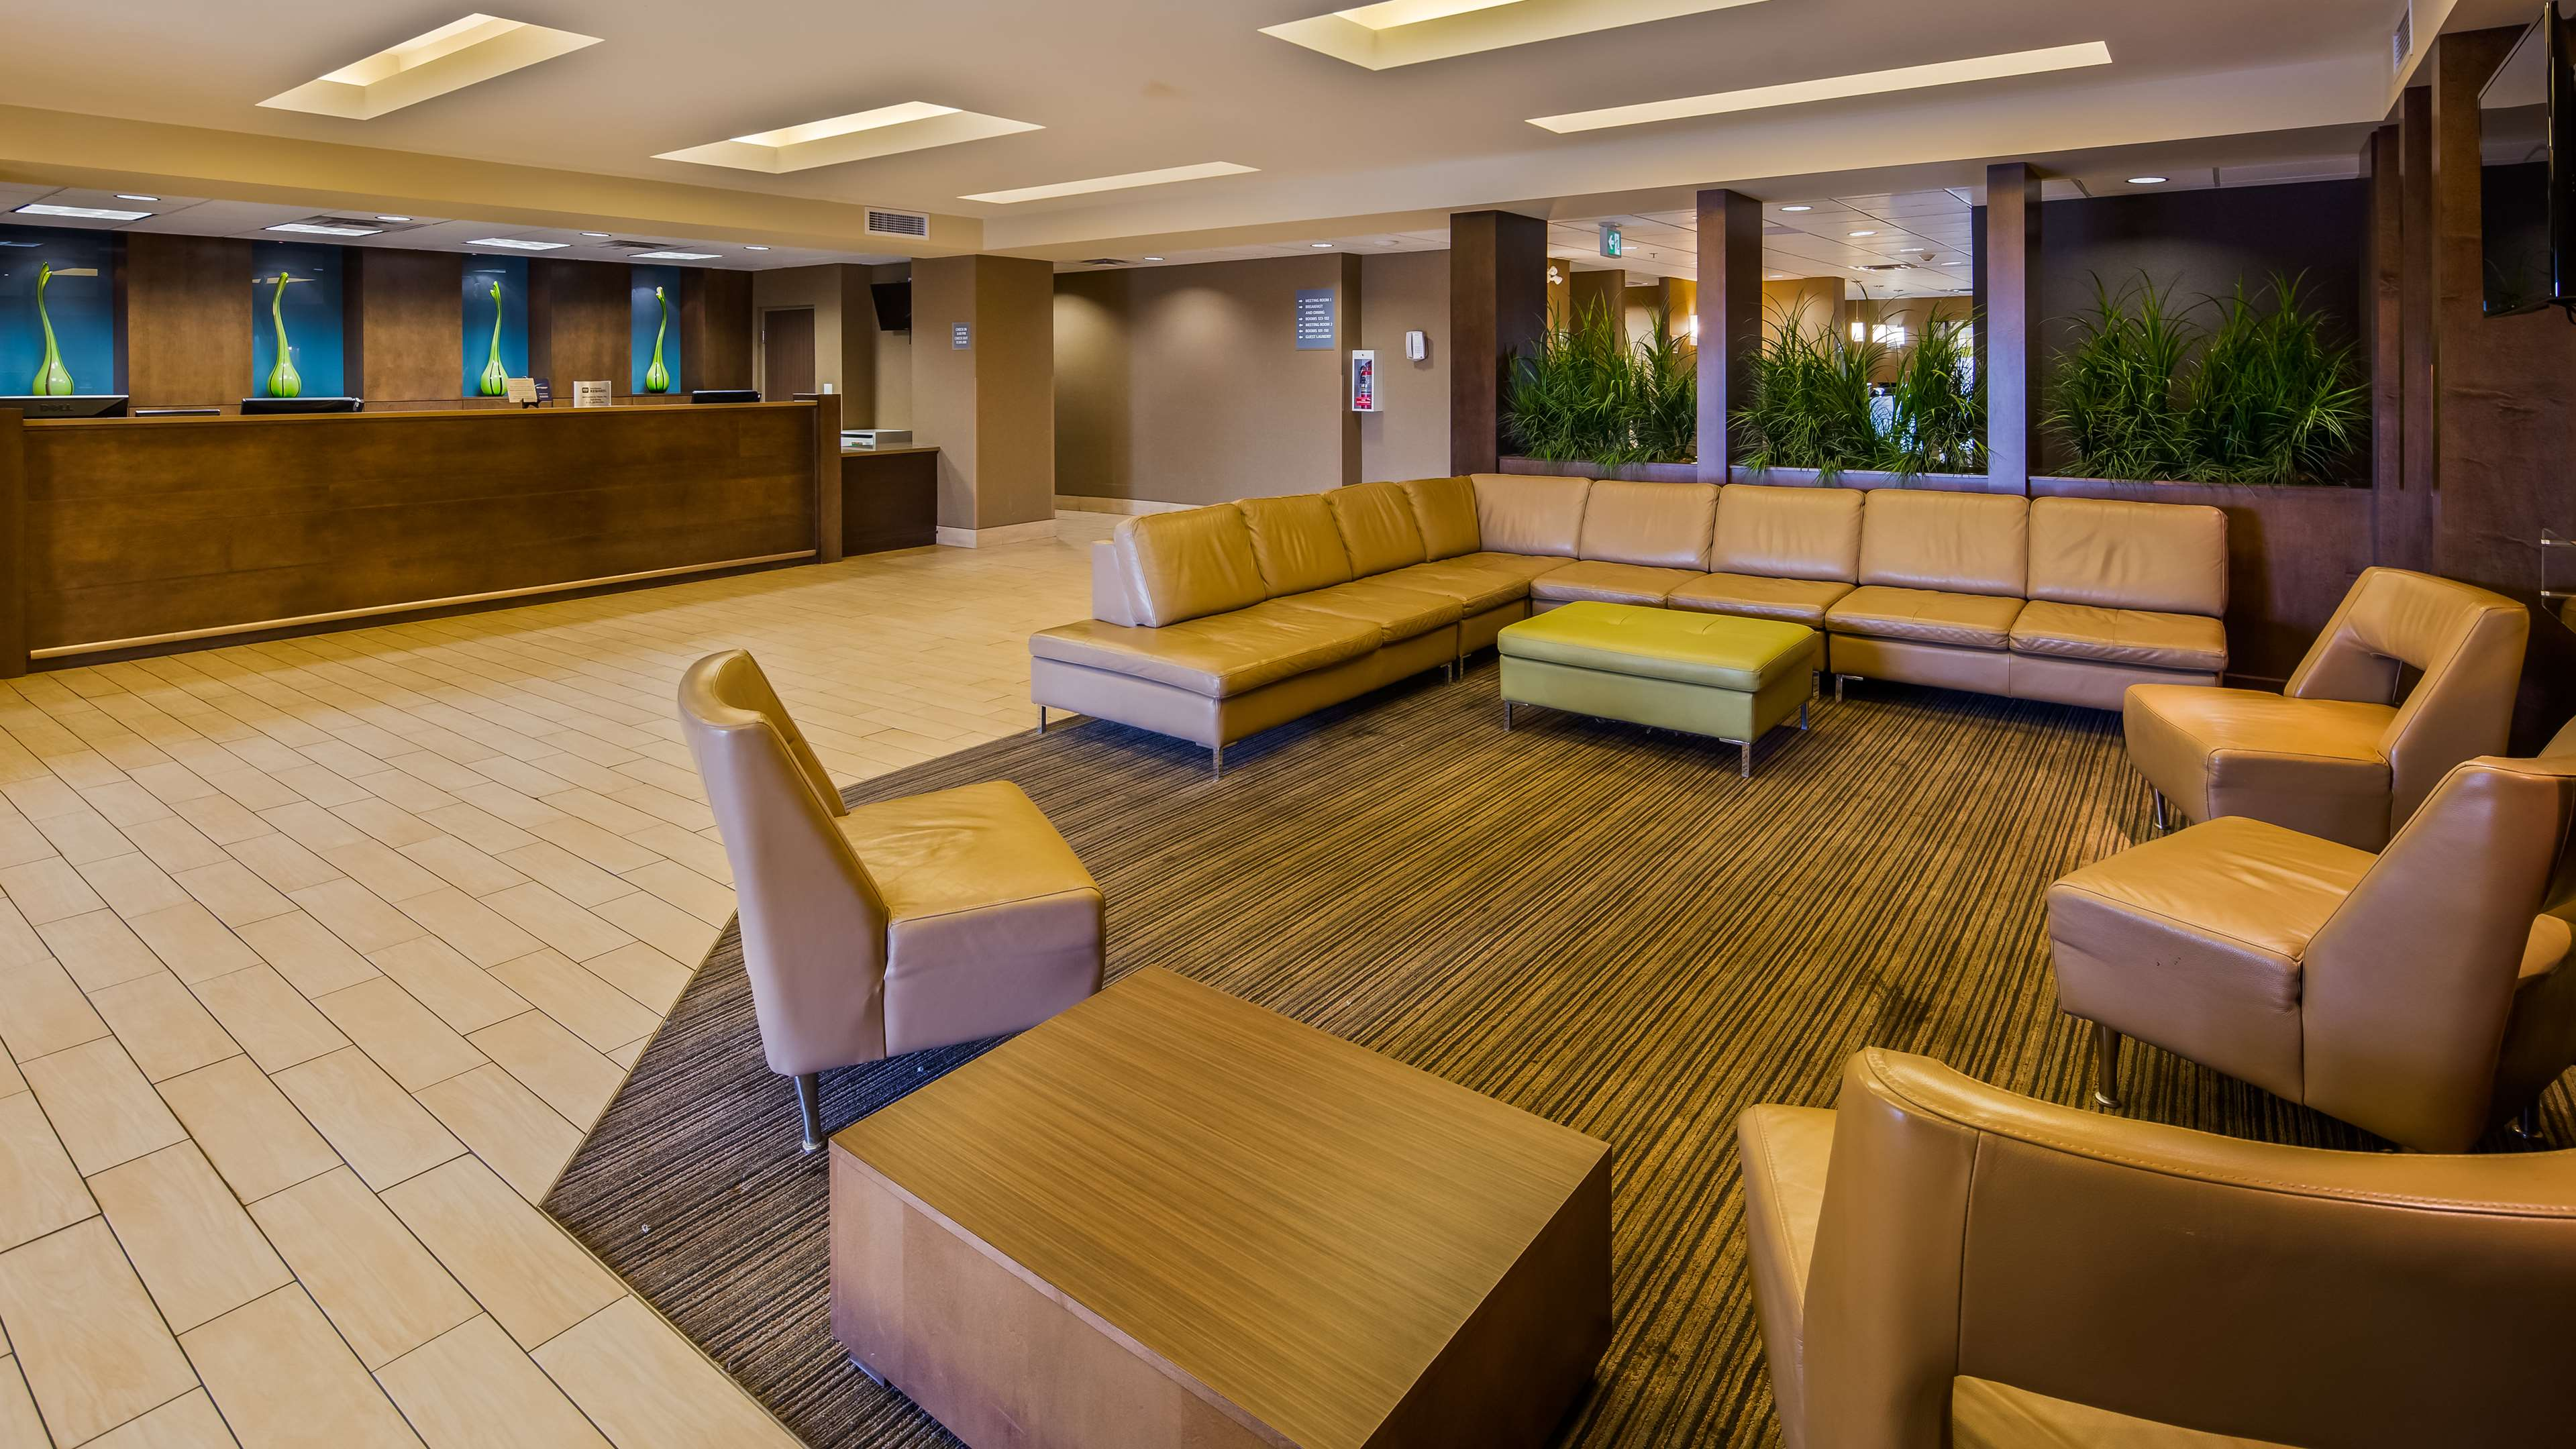 Hotel Lobby Best Western Plus Winnipeg West Headingley (204)594-2200